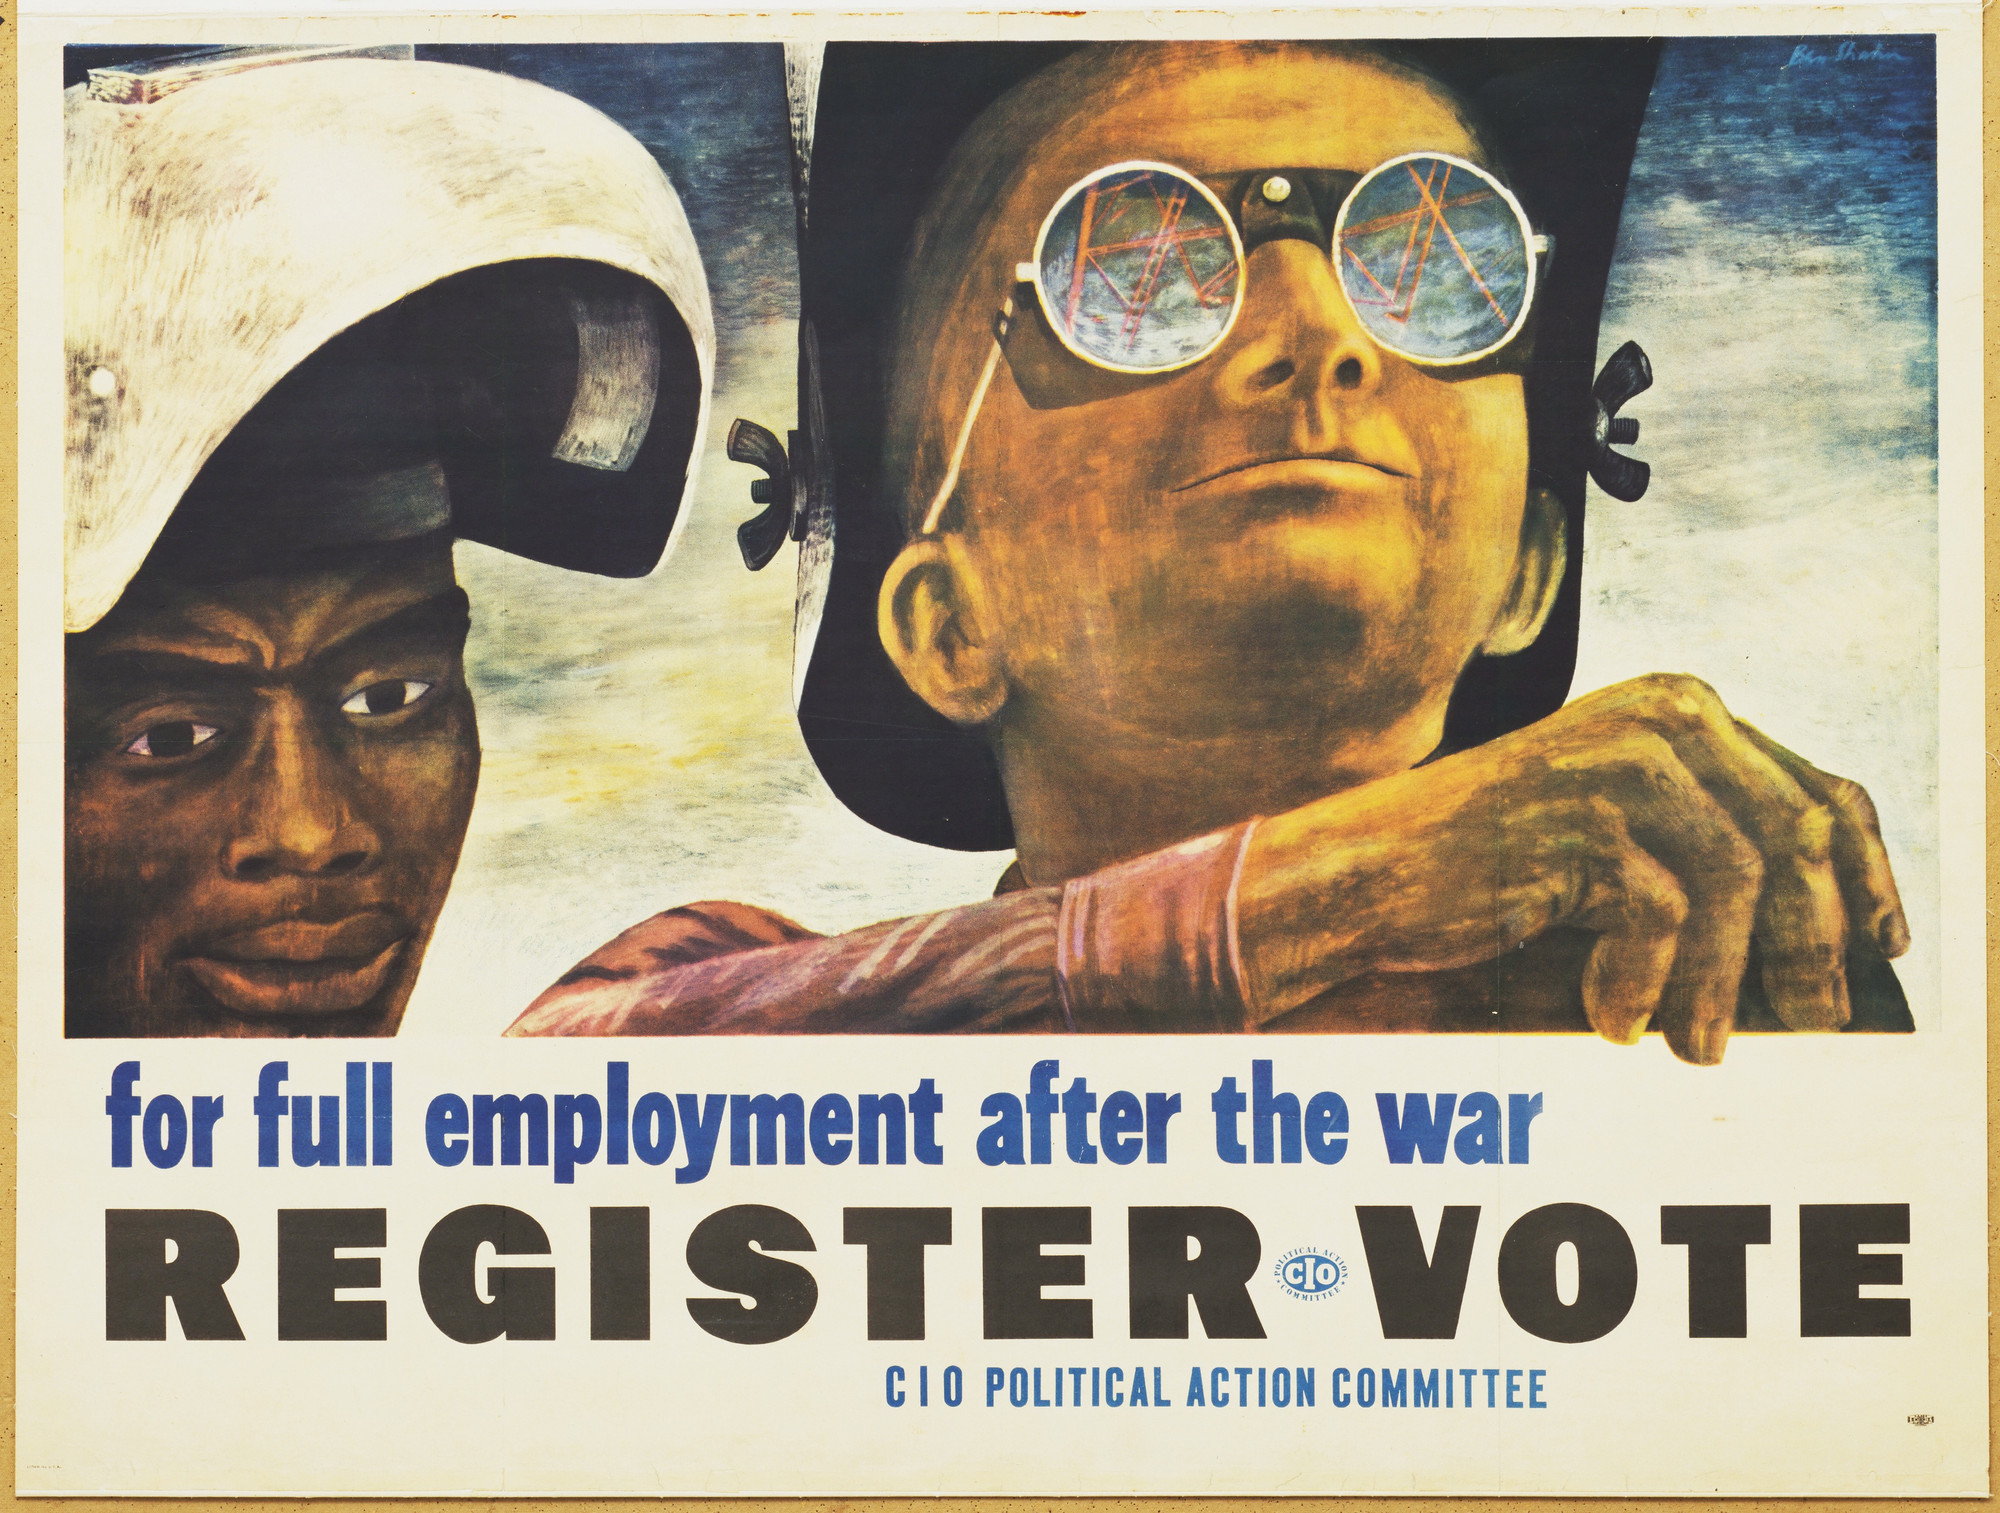 Ben Shahn. For Full Employment After the War, Register, Vote. 1944